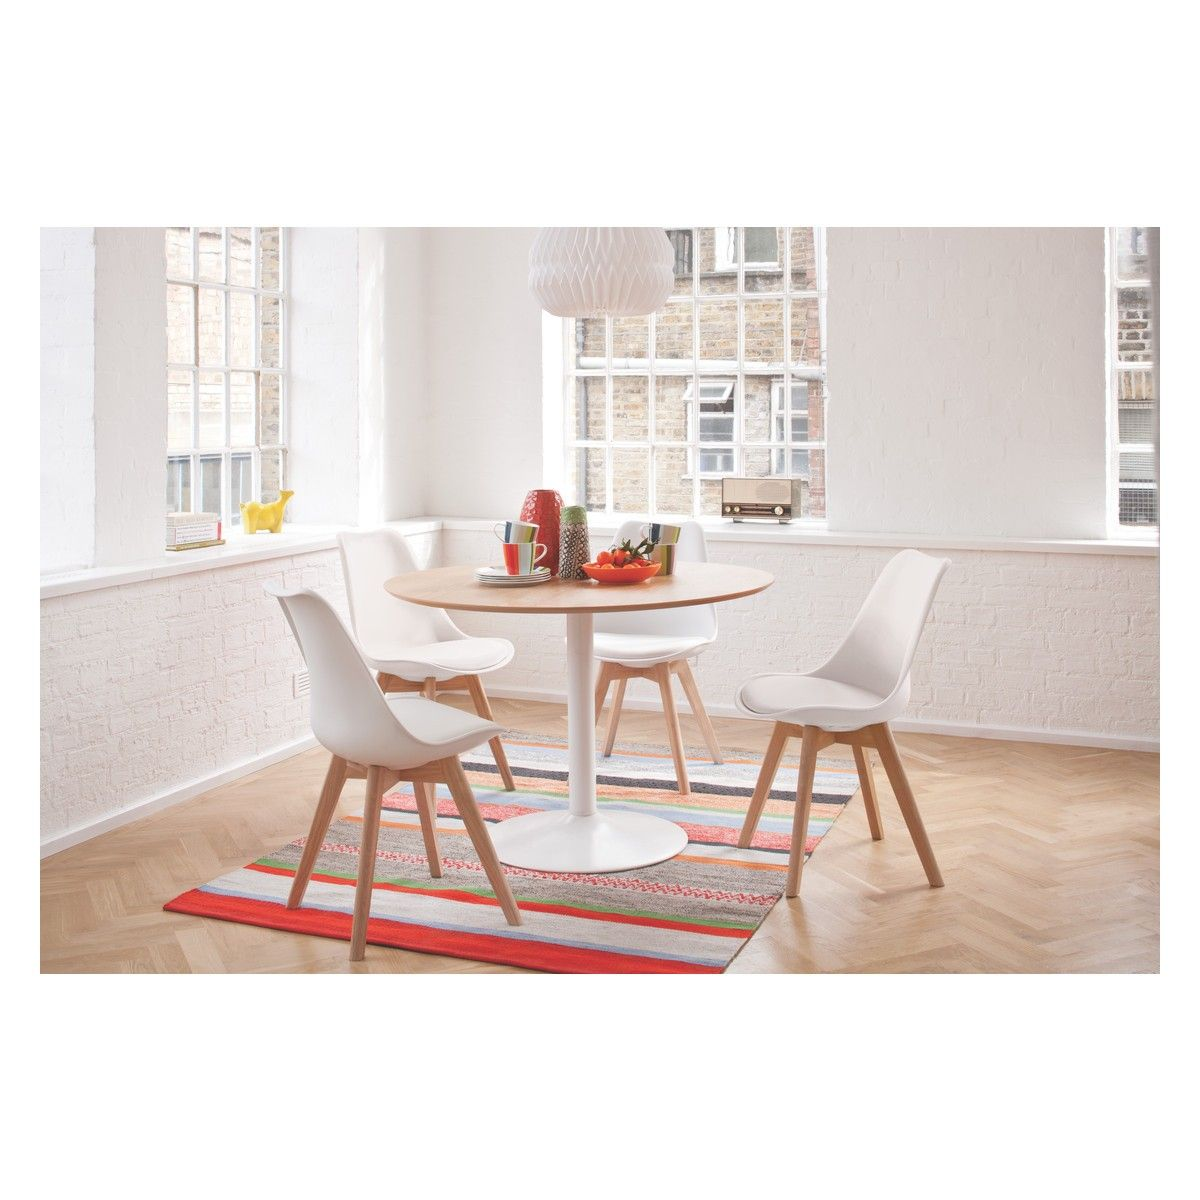 Lance dining set with oak table and jerry white chairs dining